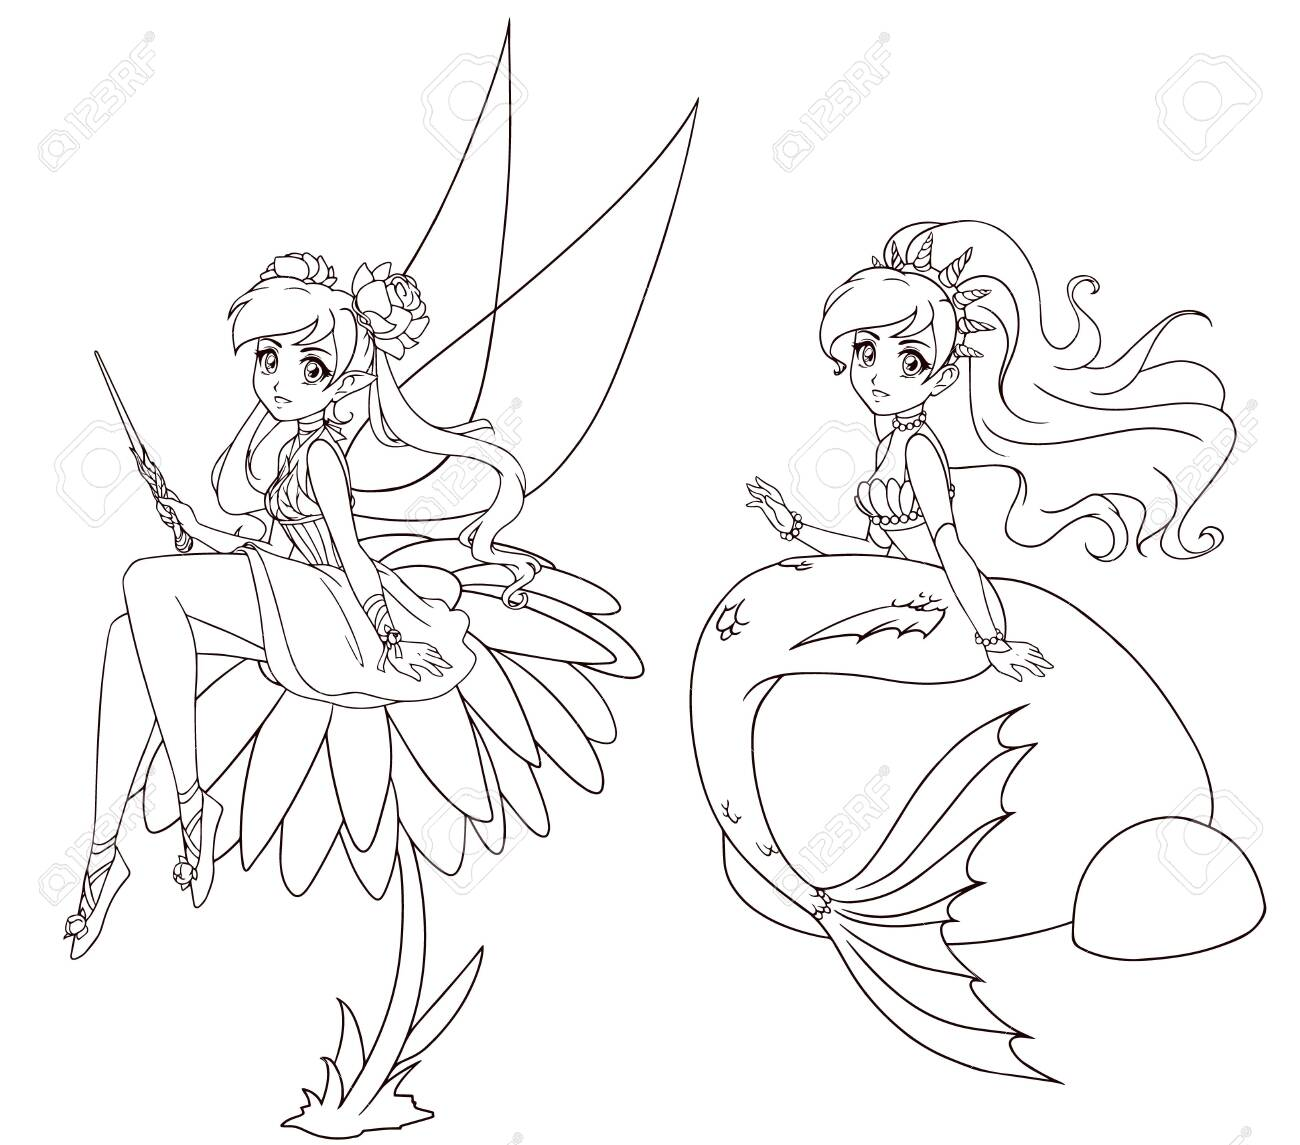 123760013-set-of-two-anime-style-characters-mermaid-and-fairy-hand-drawn-vector-illustration-on-a-white-backgr.jpg